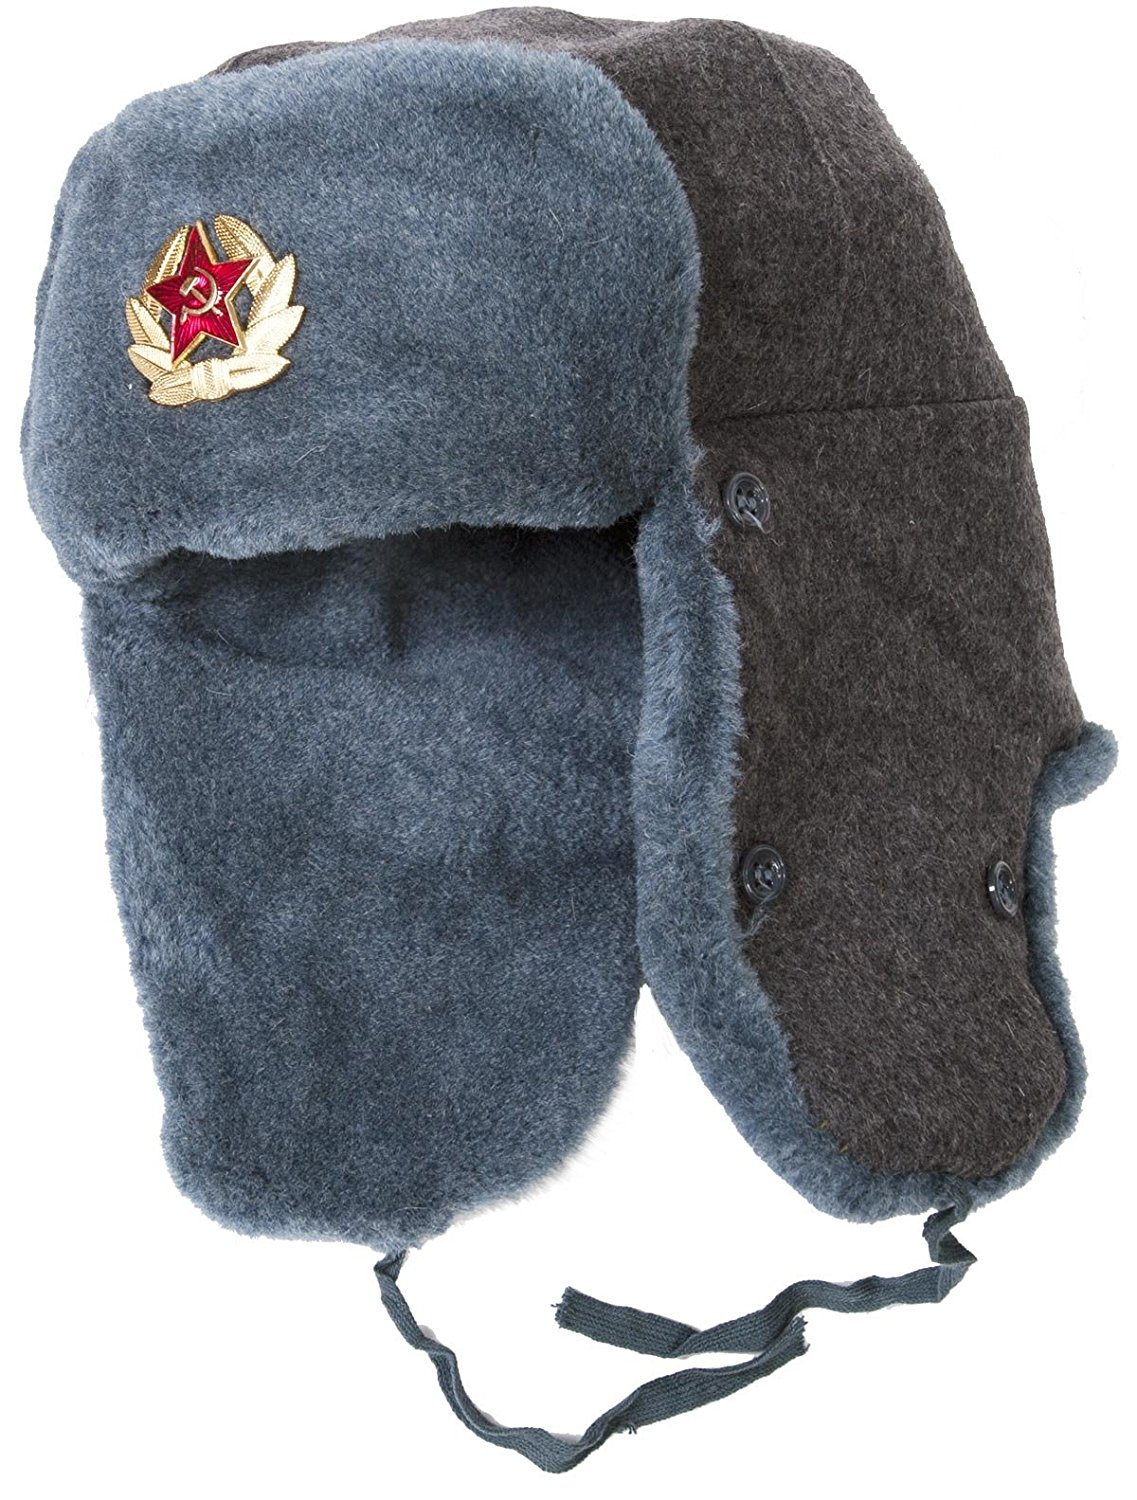 ushanka hat authentic russian army ushanka winter hat, with soviet army soldier  insignia at amazon menu0027s zflniuz